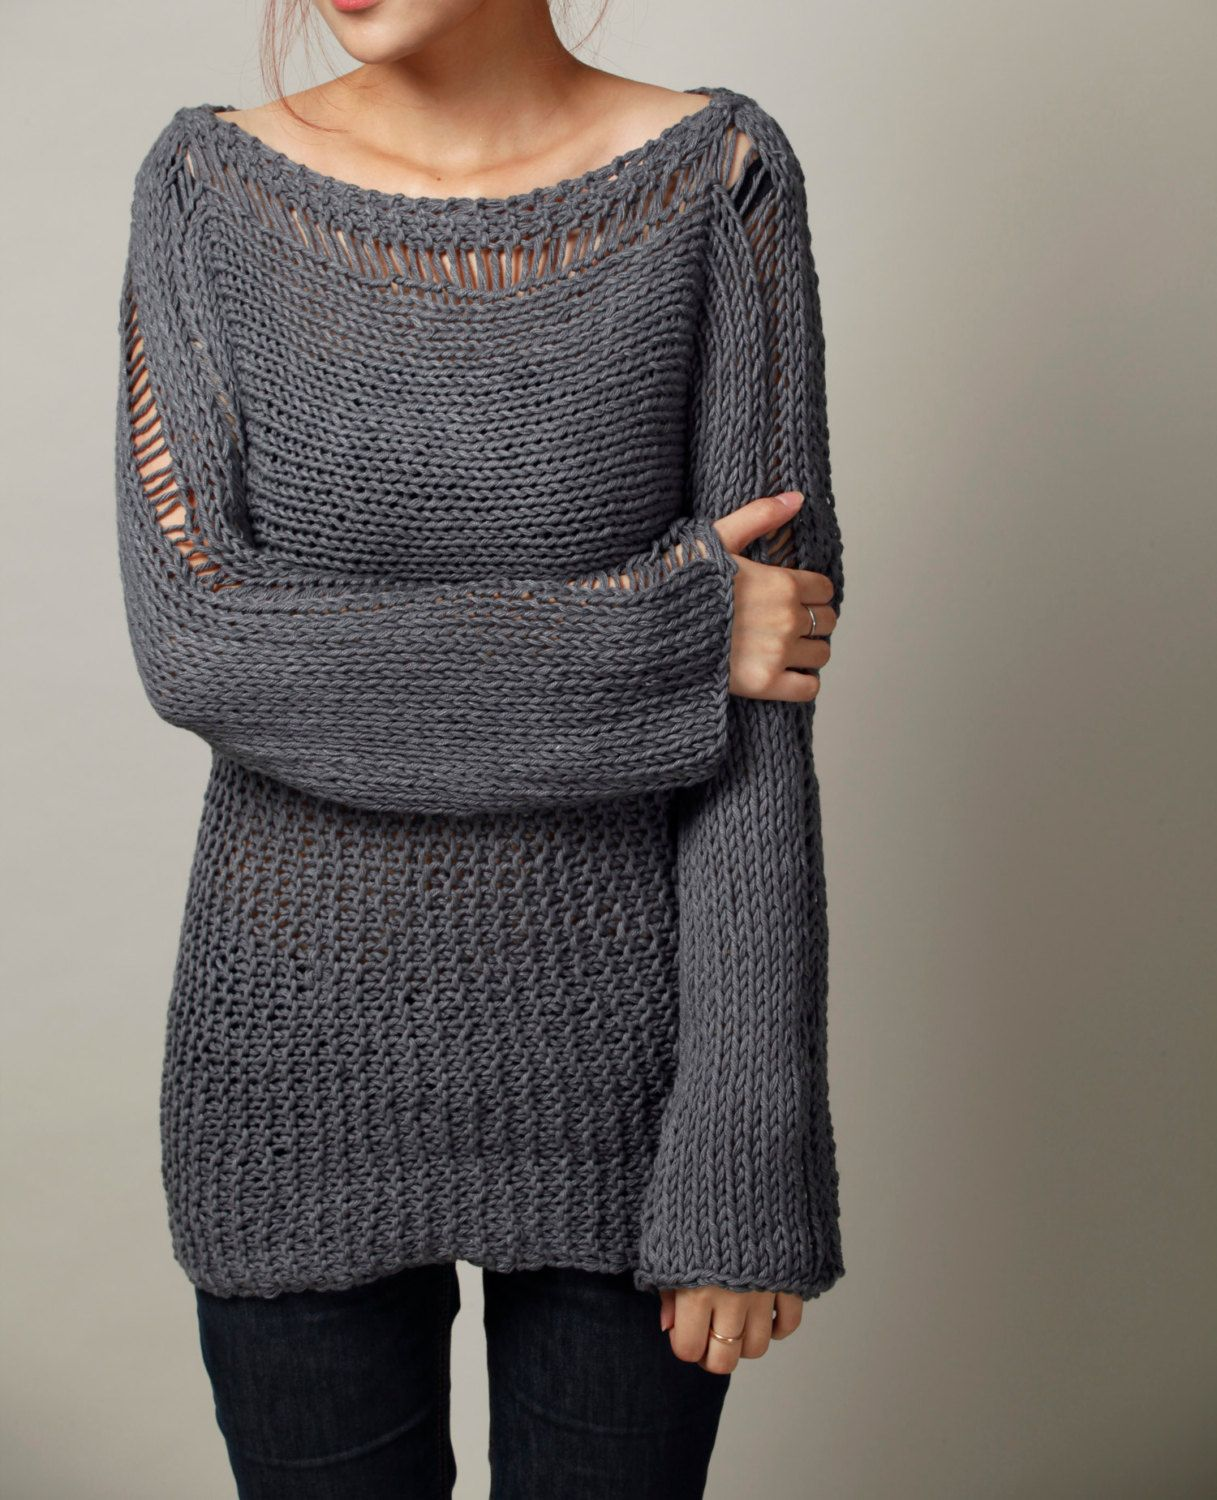 Hand Knit Woman Sweater - Eco Cotton Oversized sweater in Charcoal ...